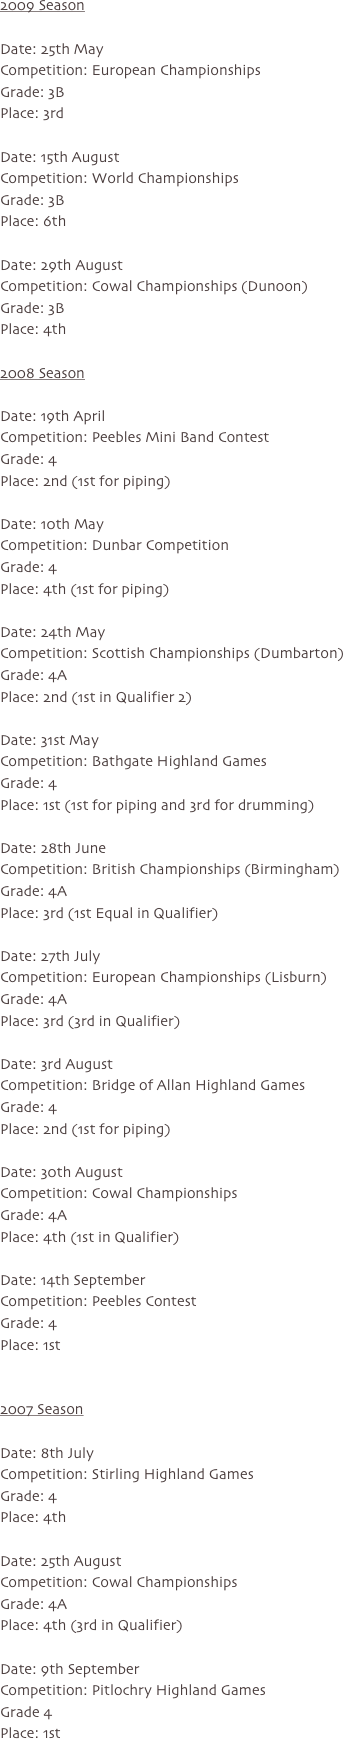 2009 Season